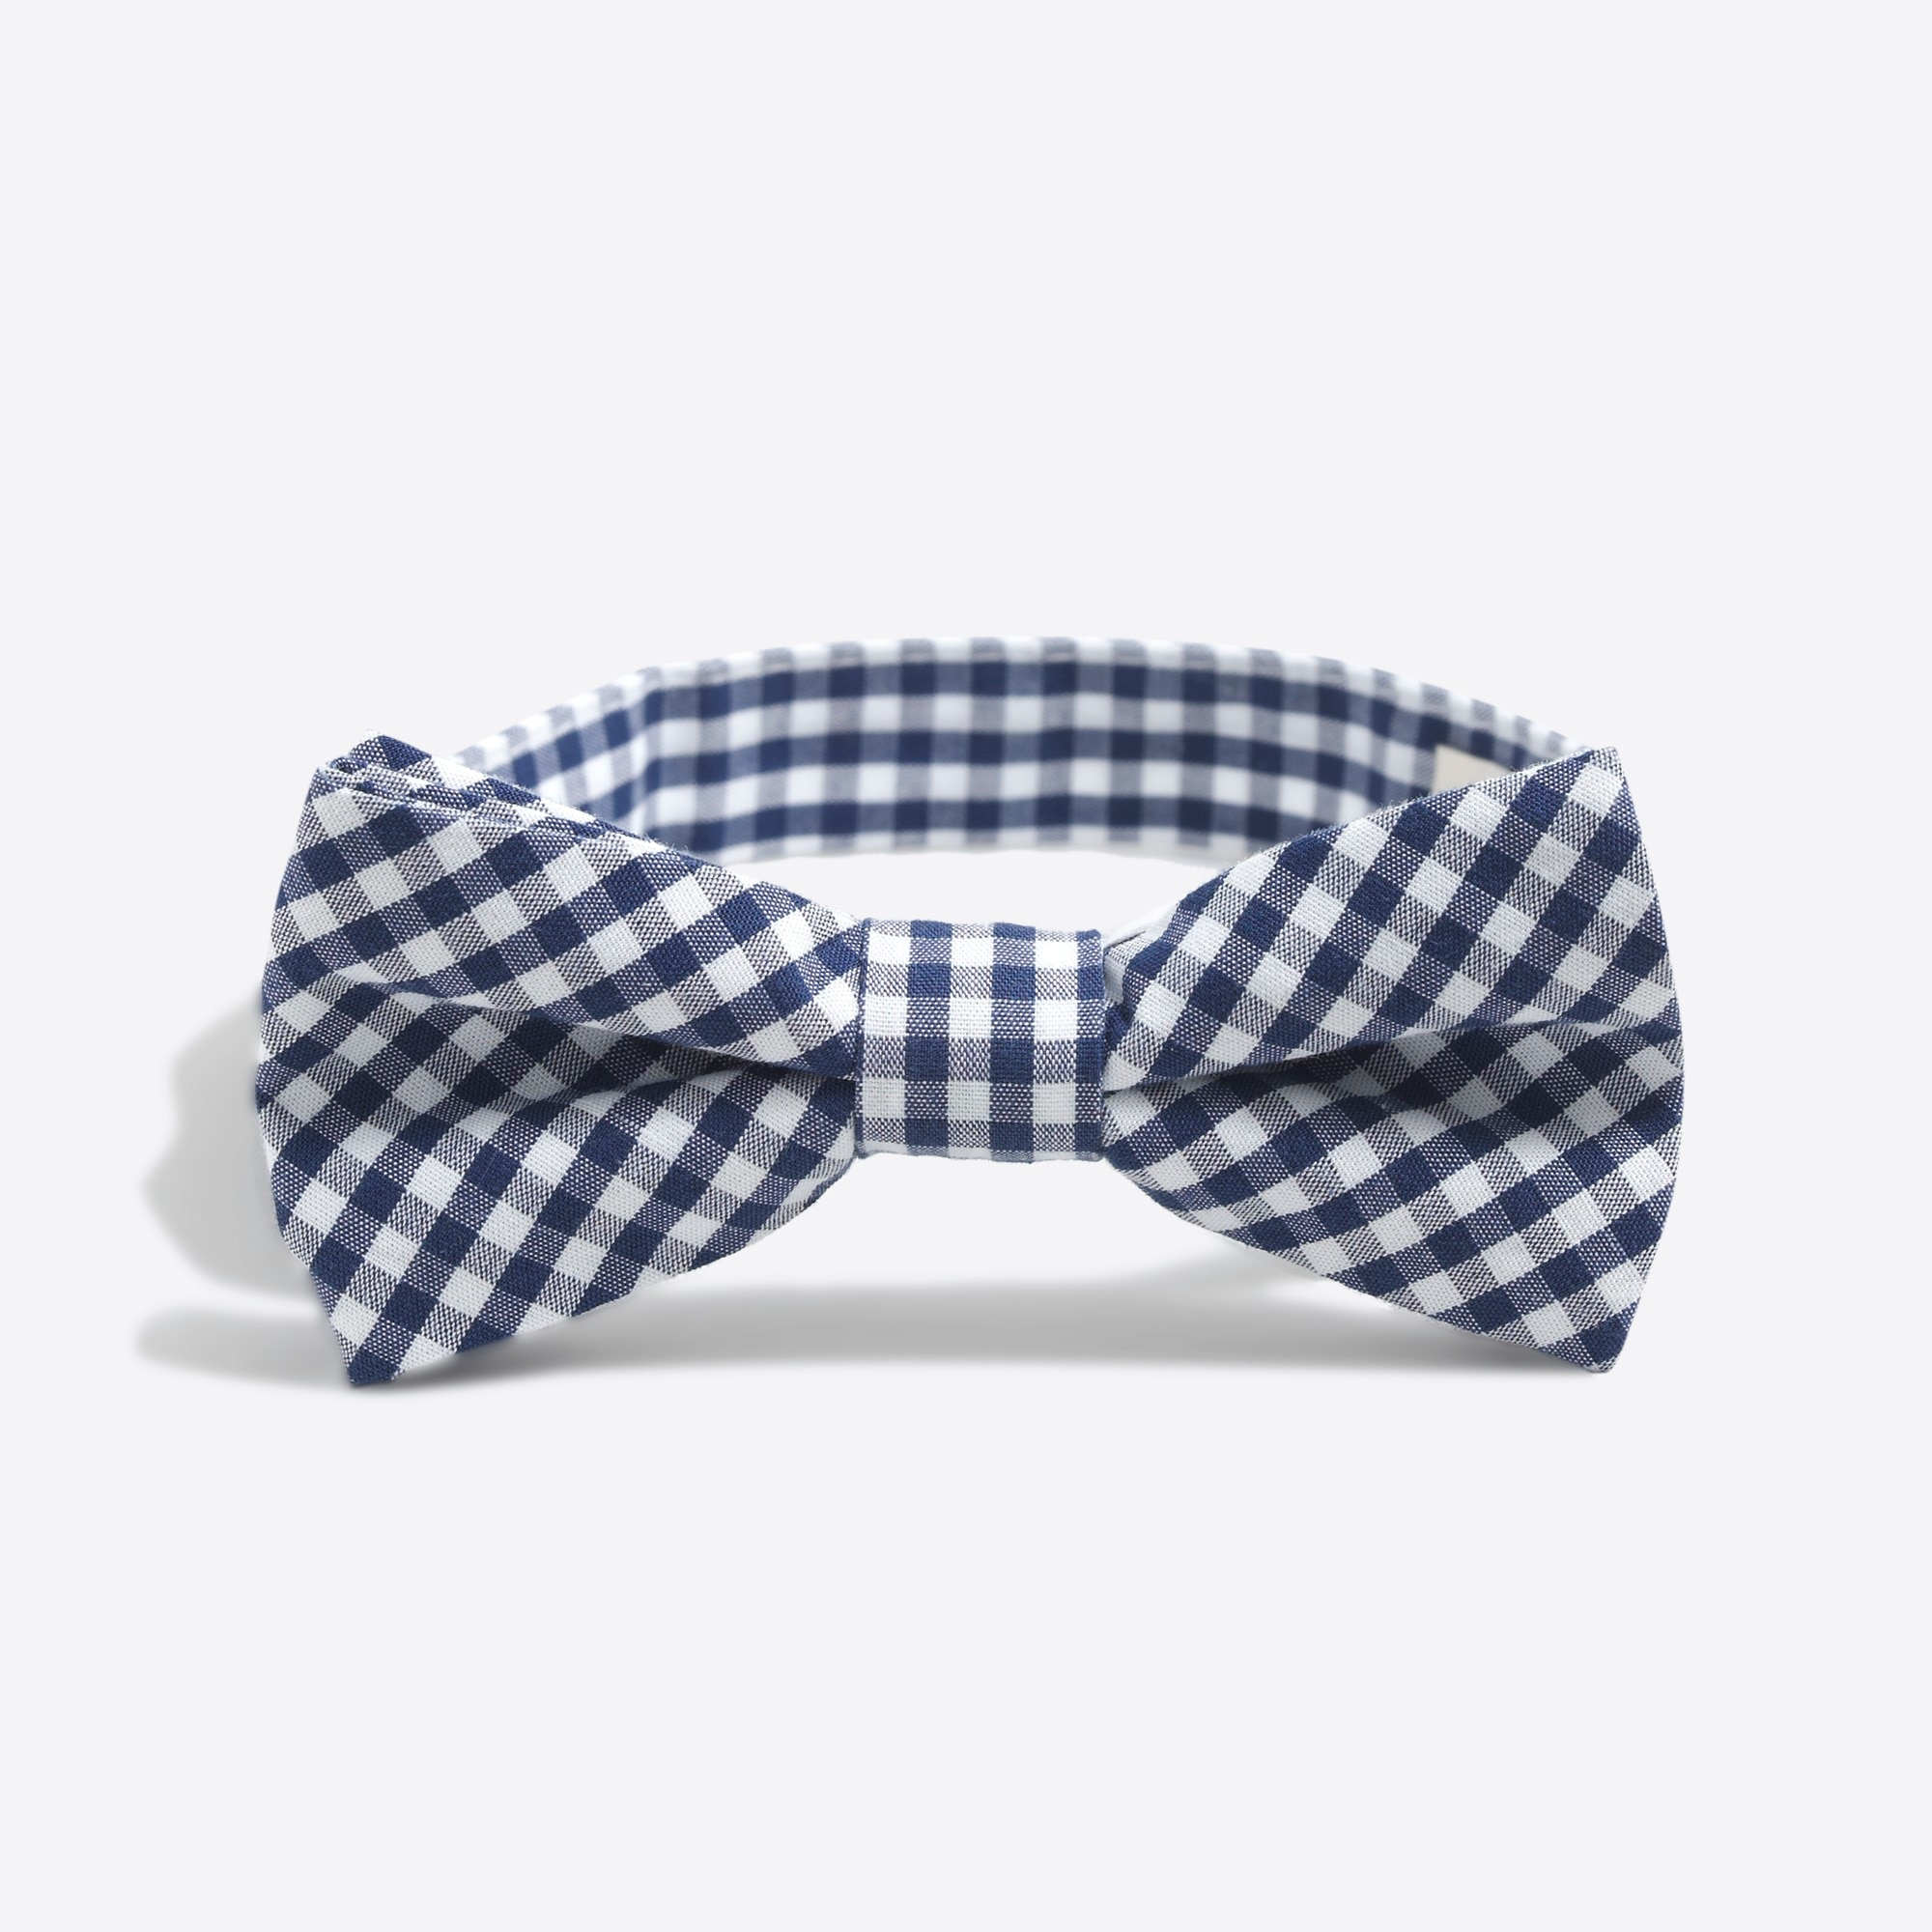 Boys' patterned bow tie factoryboys ties & accessories c